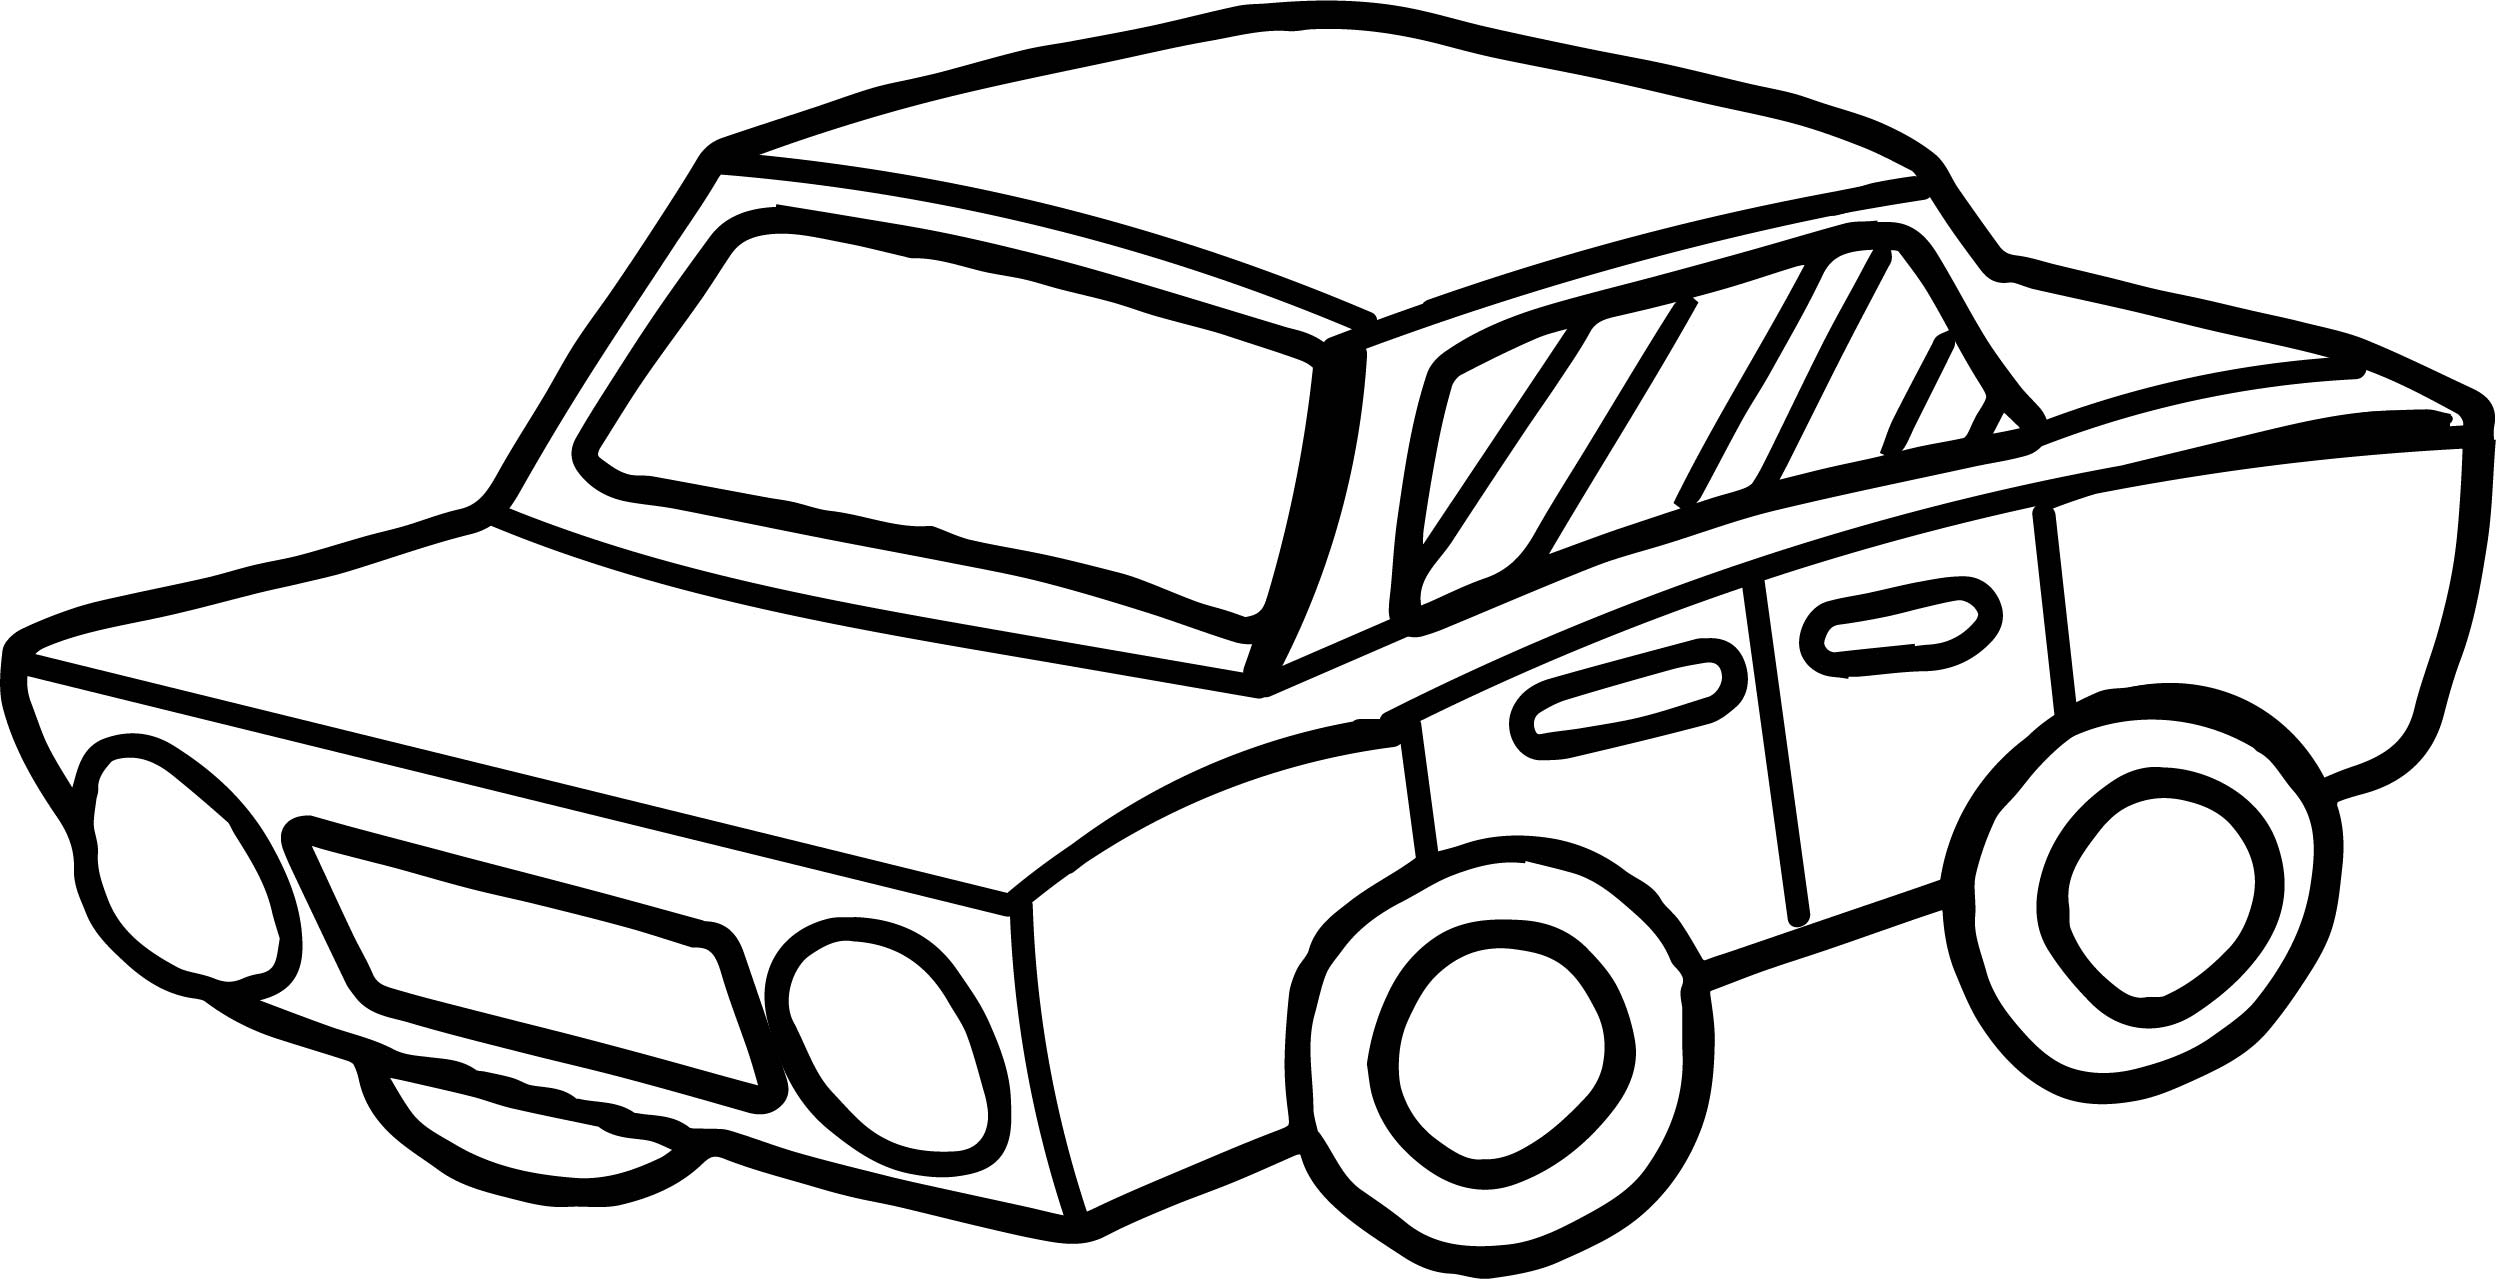 2496x1279 Line Drawing Car For Free Download